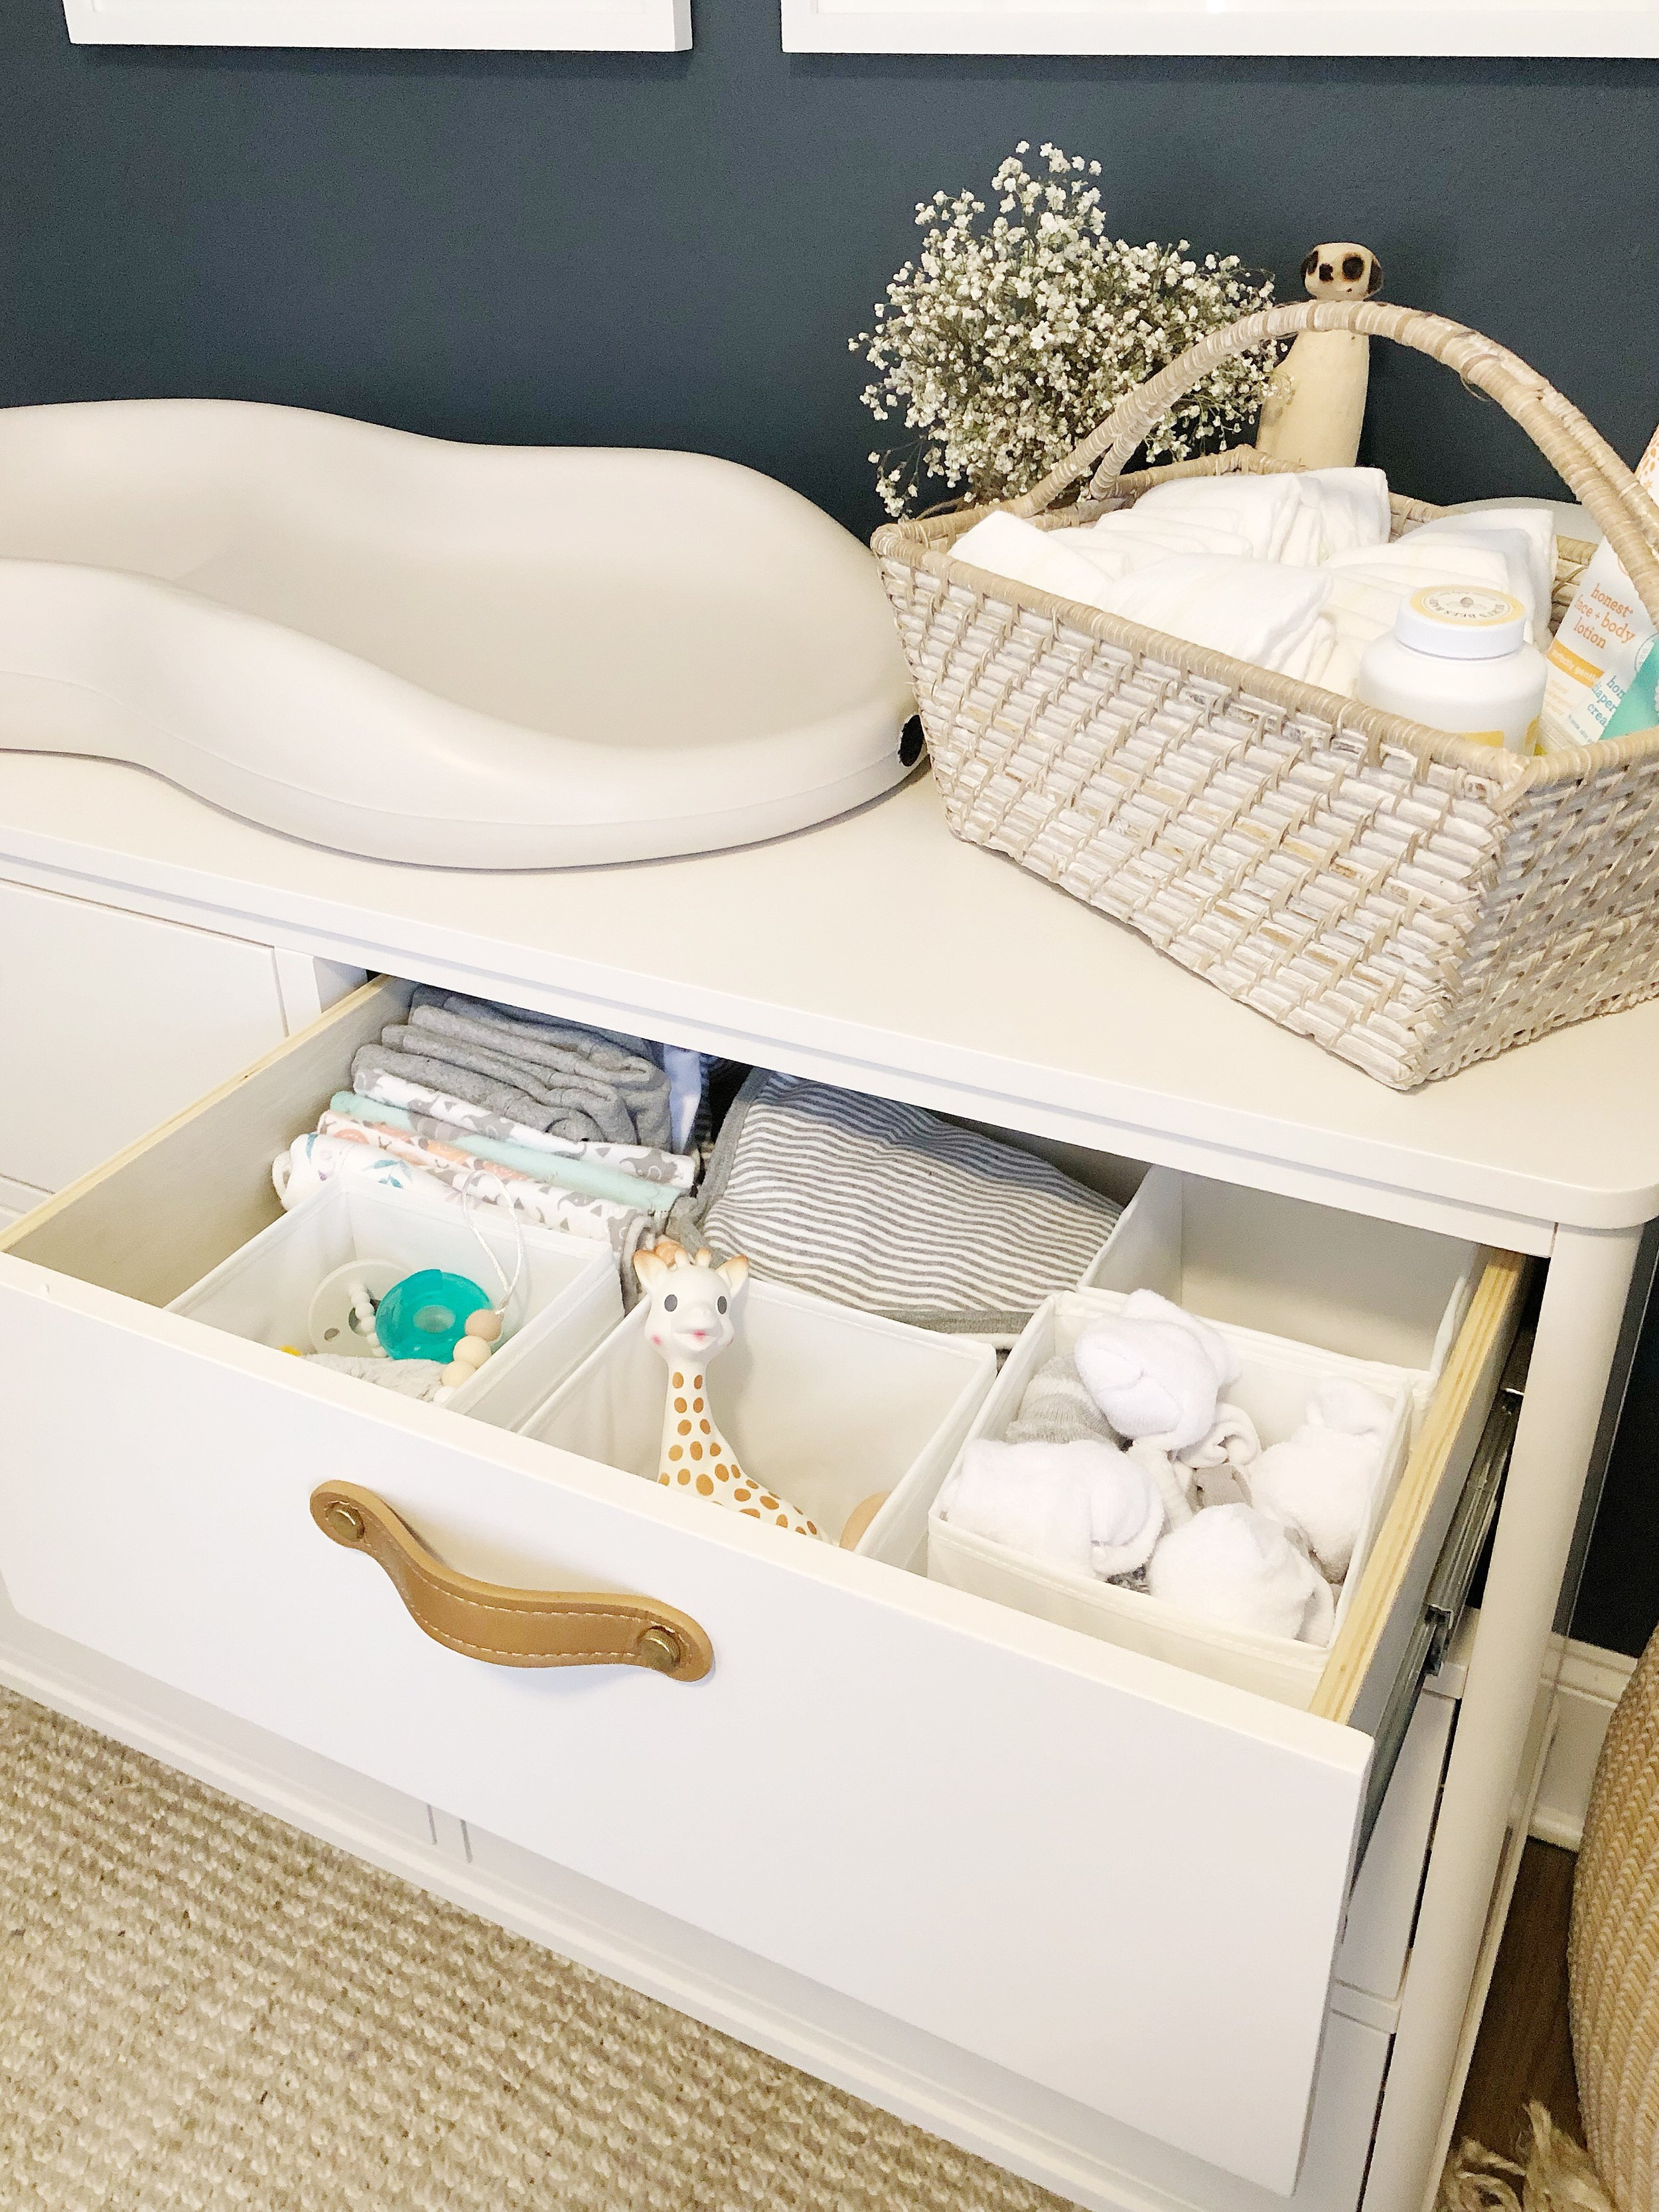 Baby registry must haves and essentials. Tanner dresser.